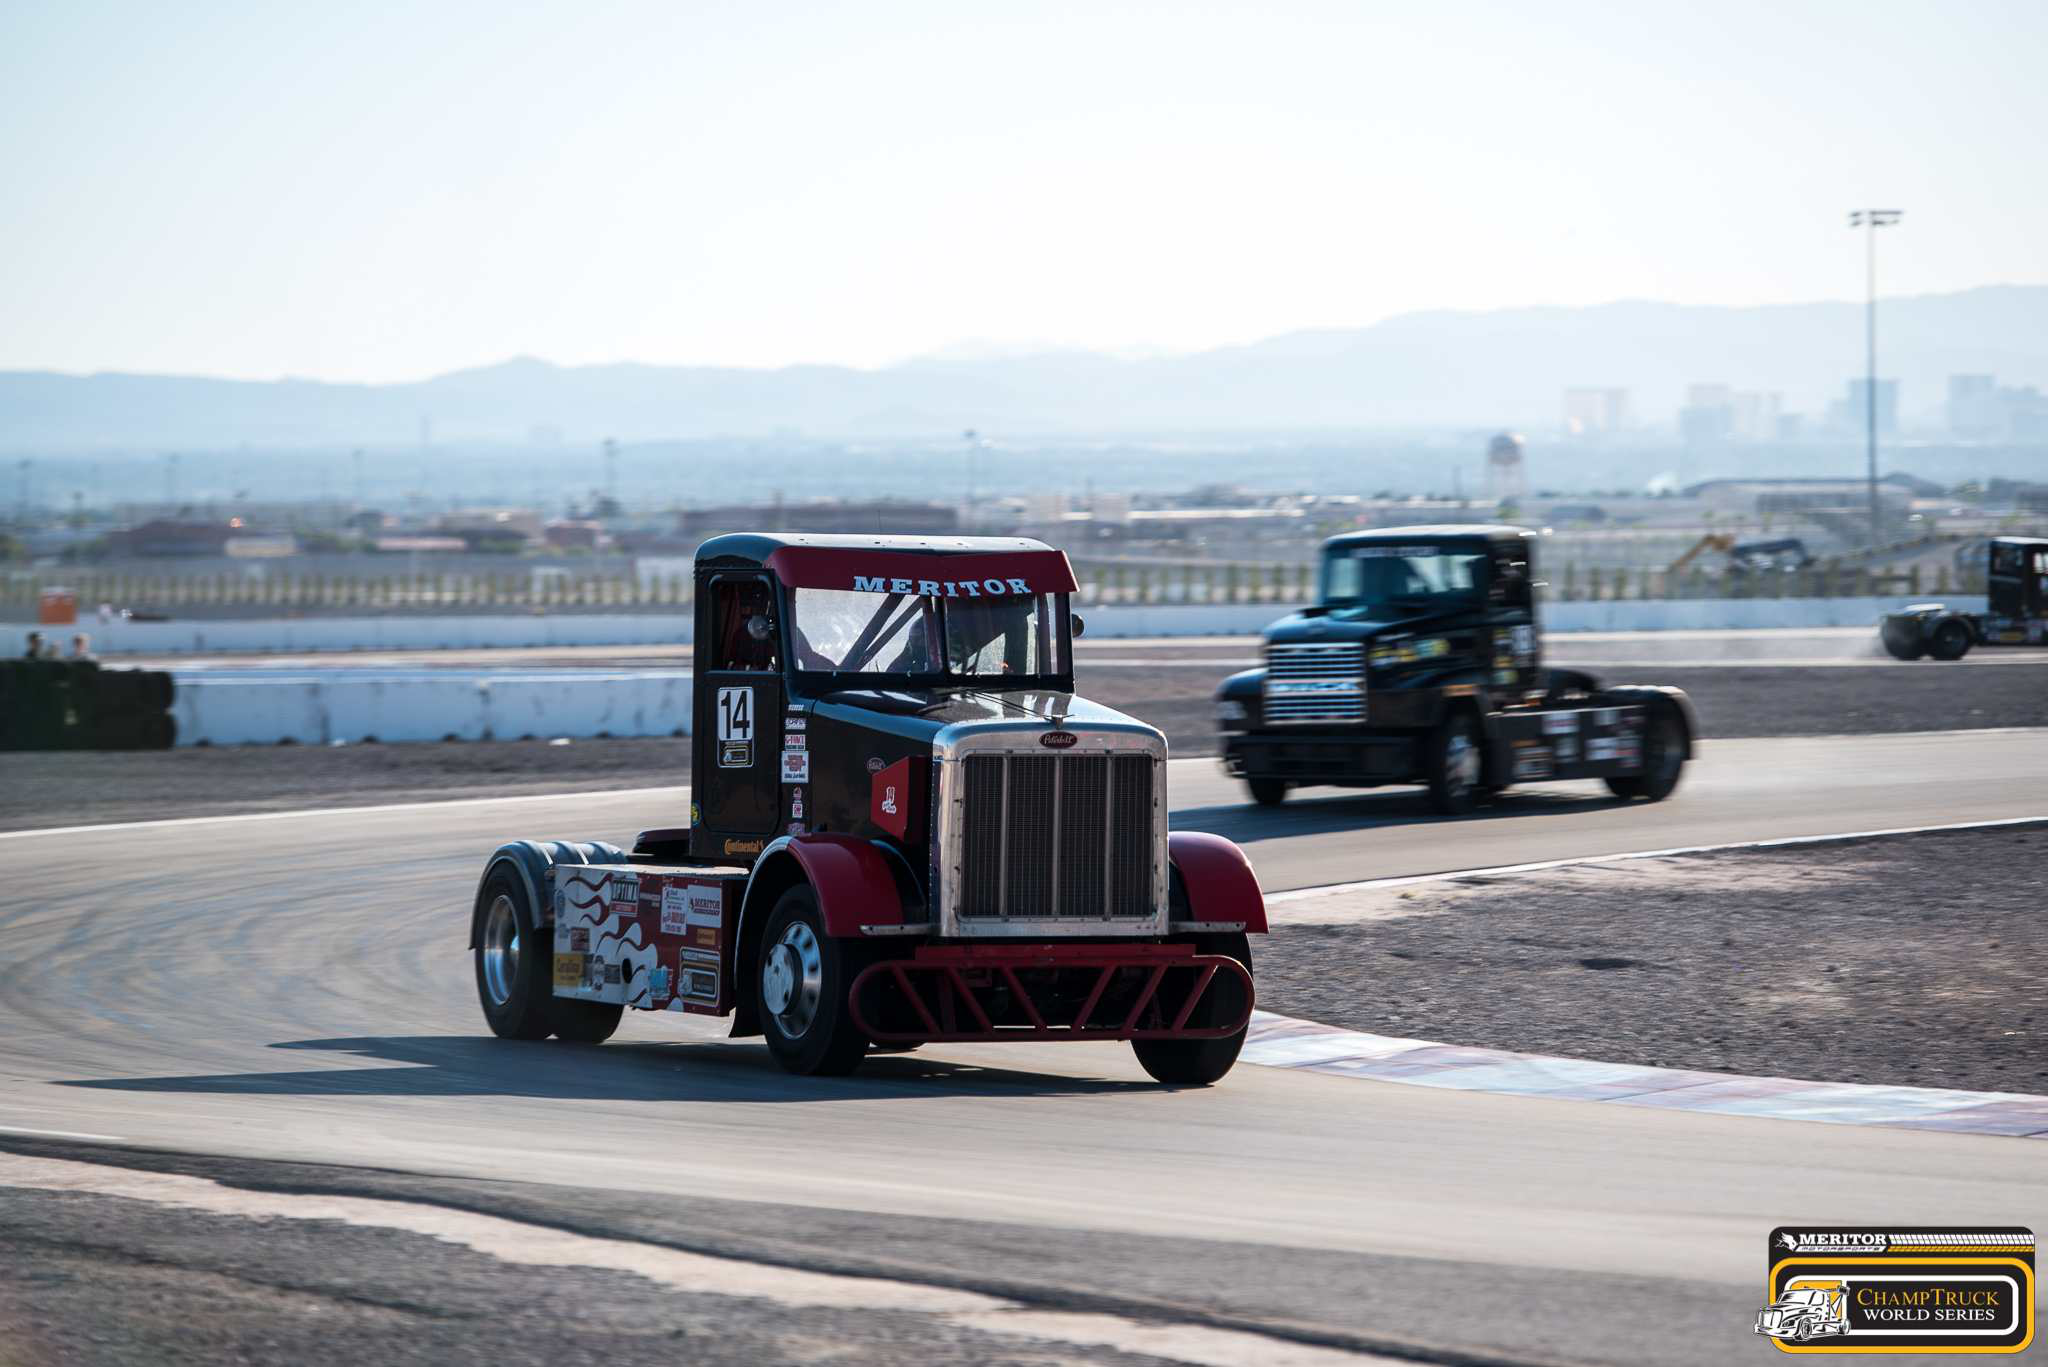 Ricky 'Rude' Proffitt claims another ChampTruck win, third of the season